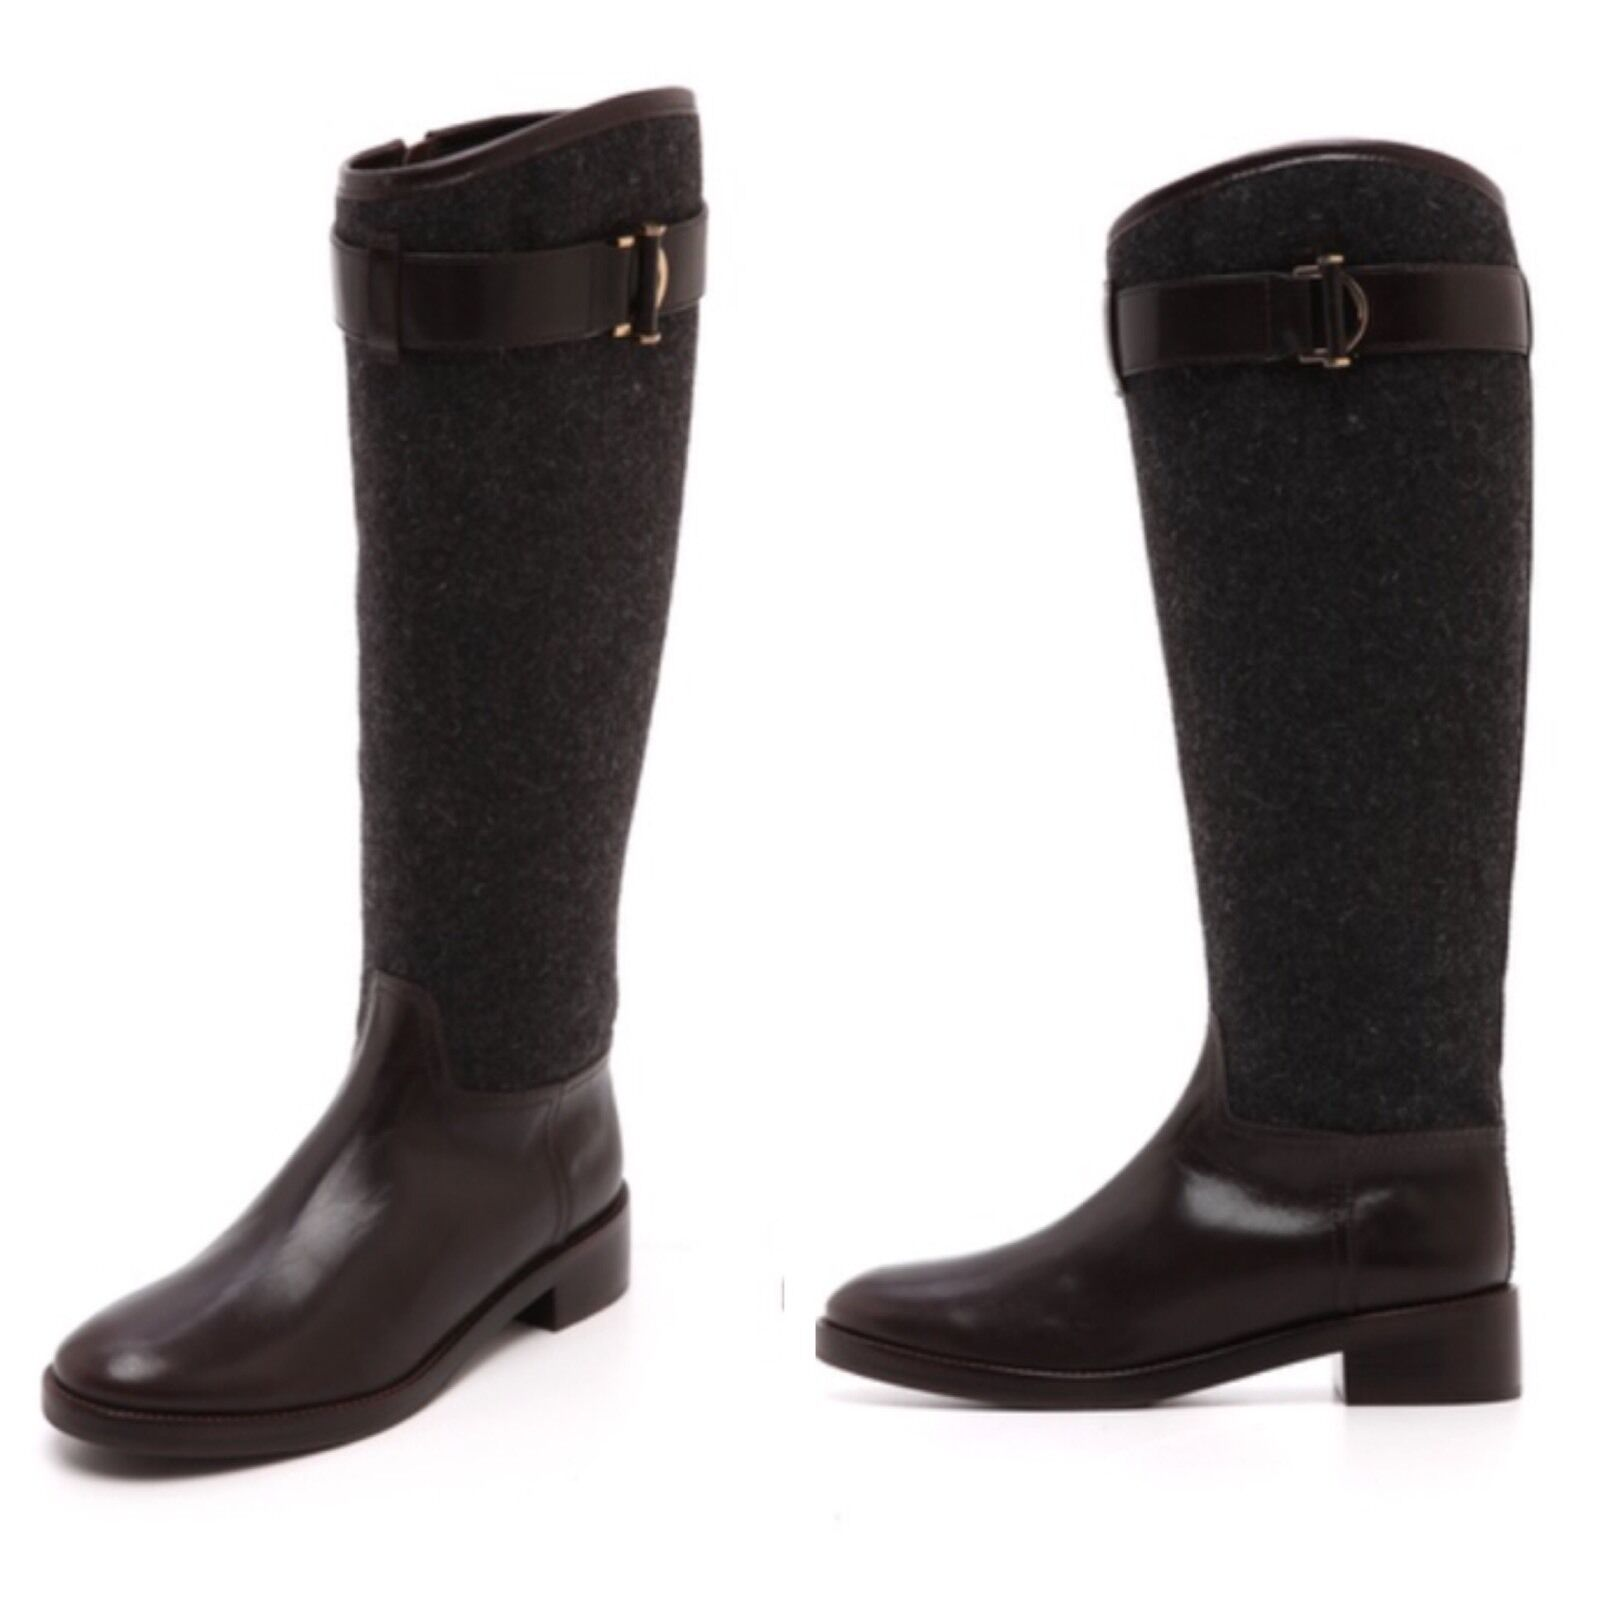 New In Box! Tory Burch Grace Riding Boots - Size 10.5 - Retail  495